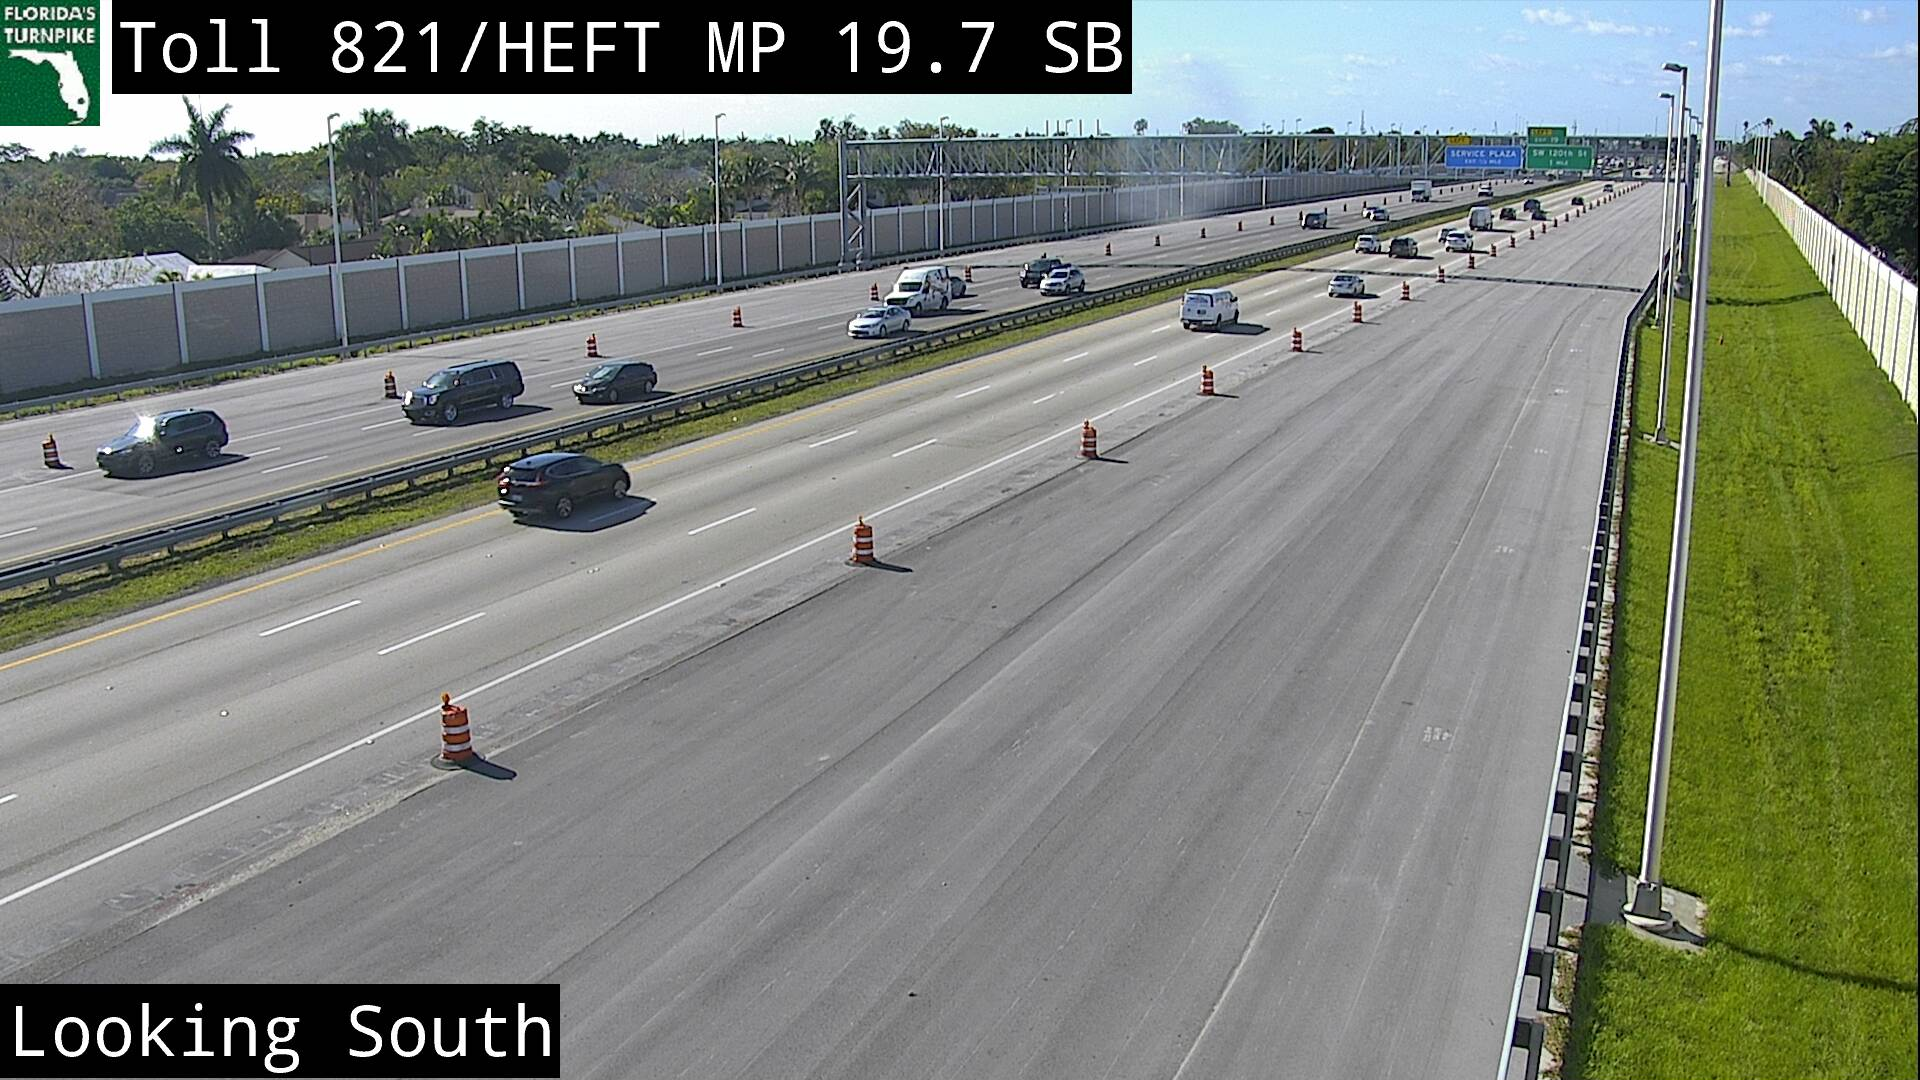 Tpke MM 020 S of Kendall Dr - Southbound - 3193 - Florida